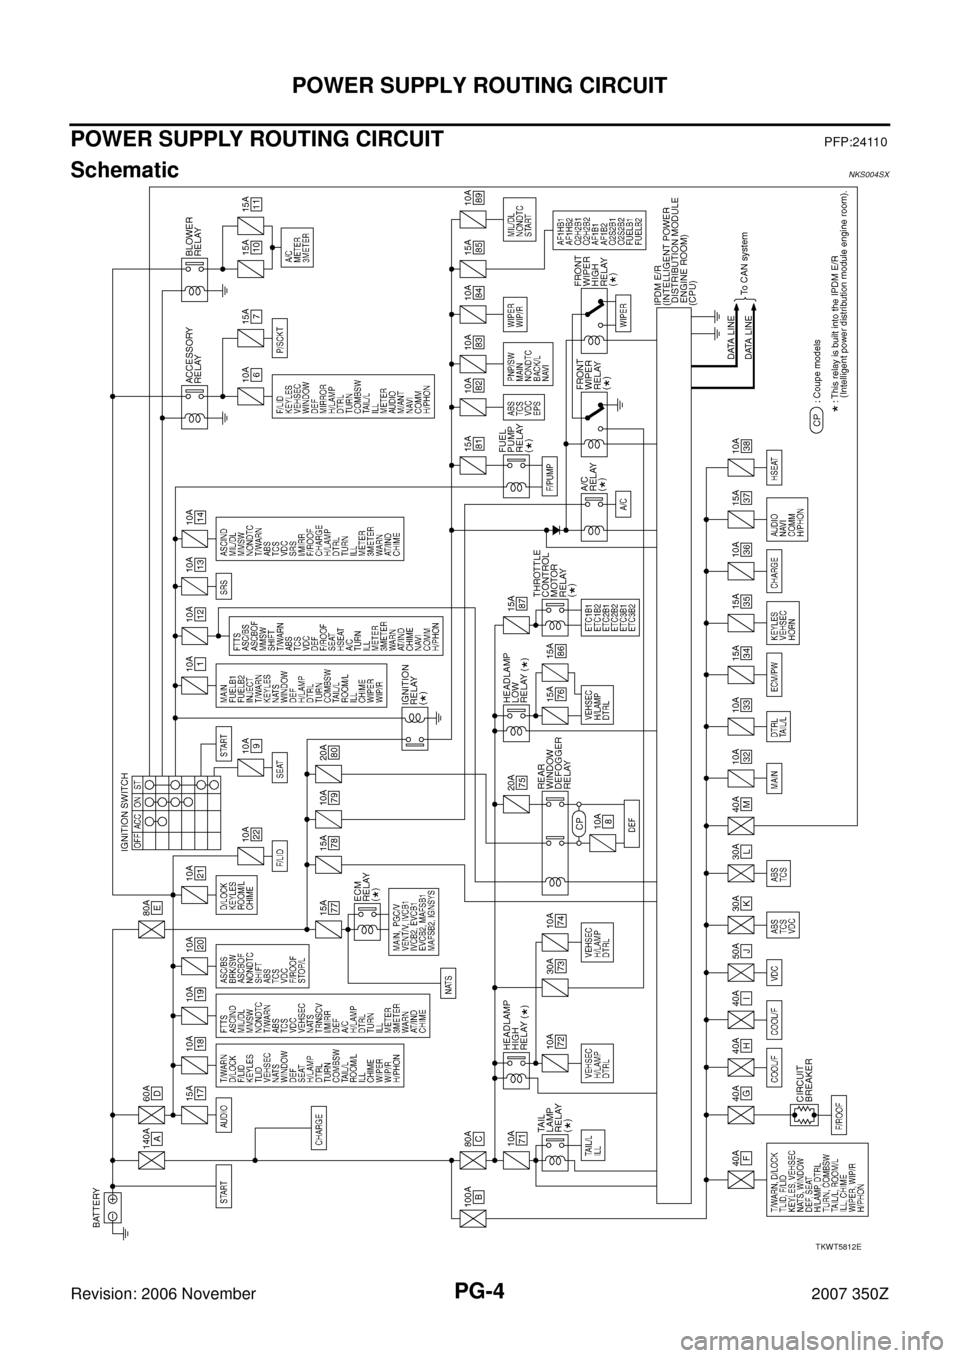 2012 nissan rogue fuse box diagram html